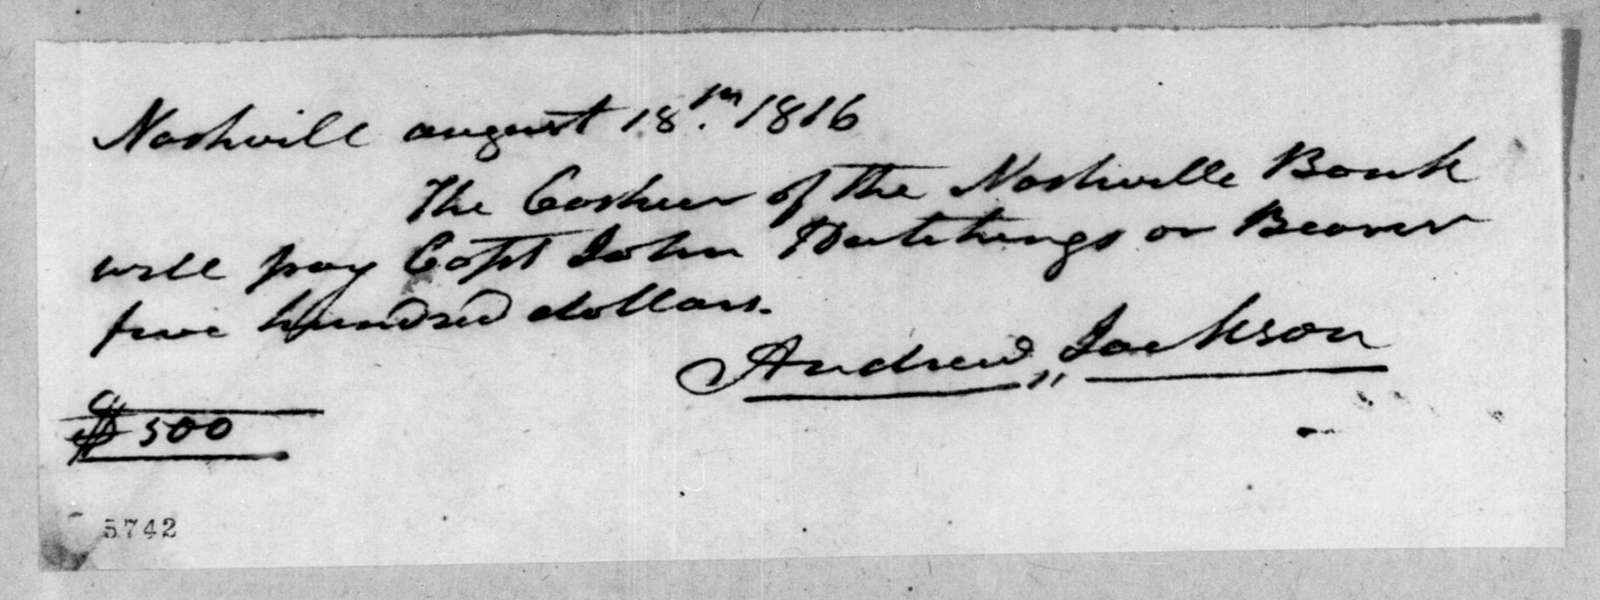 Andrew Jackson to John Hutchings, August 18, 1816